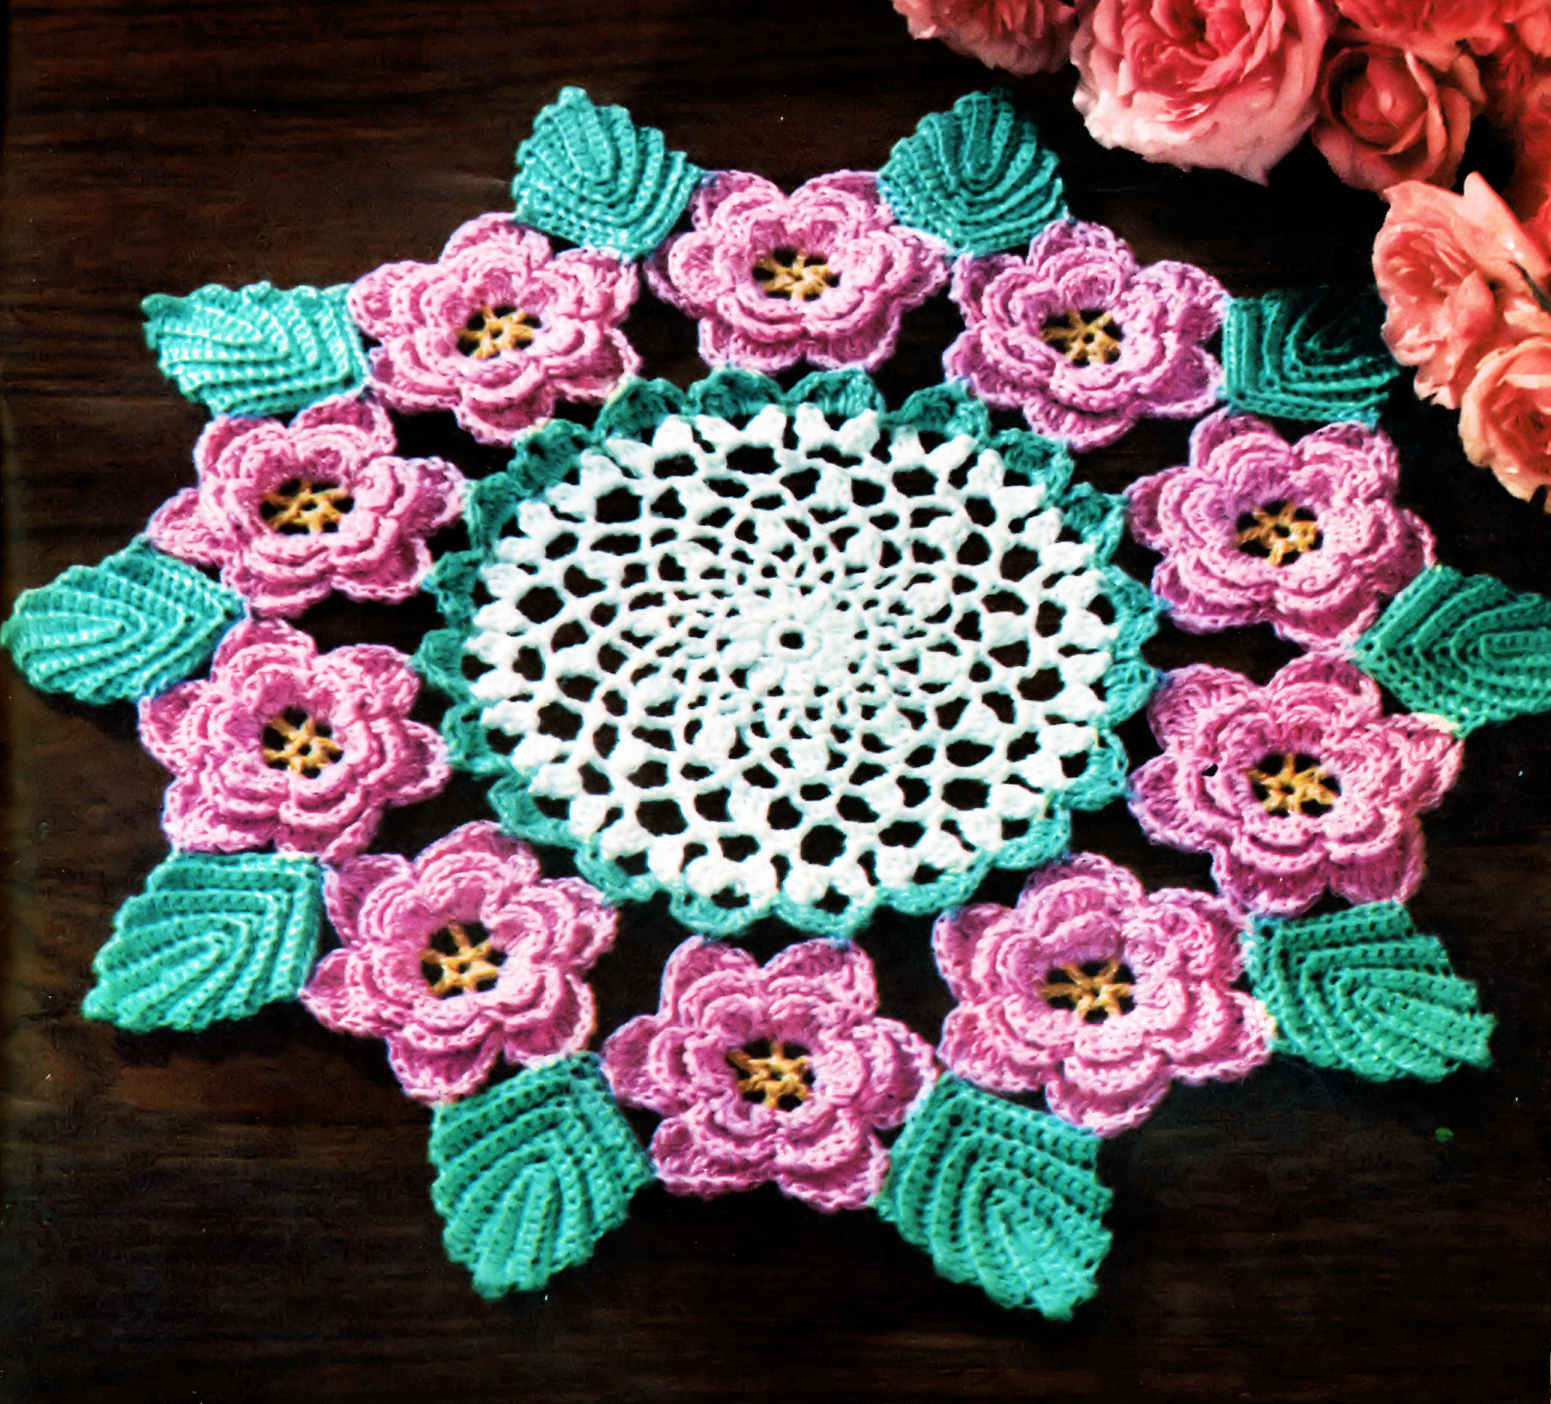 Crochet Patterns To Buy Online : CROCHET DOILY FREE PATTERN ROSE FREE PATTERNS